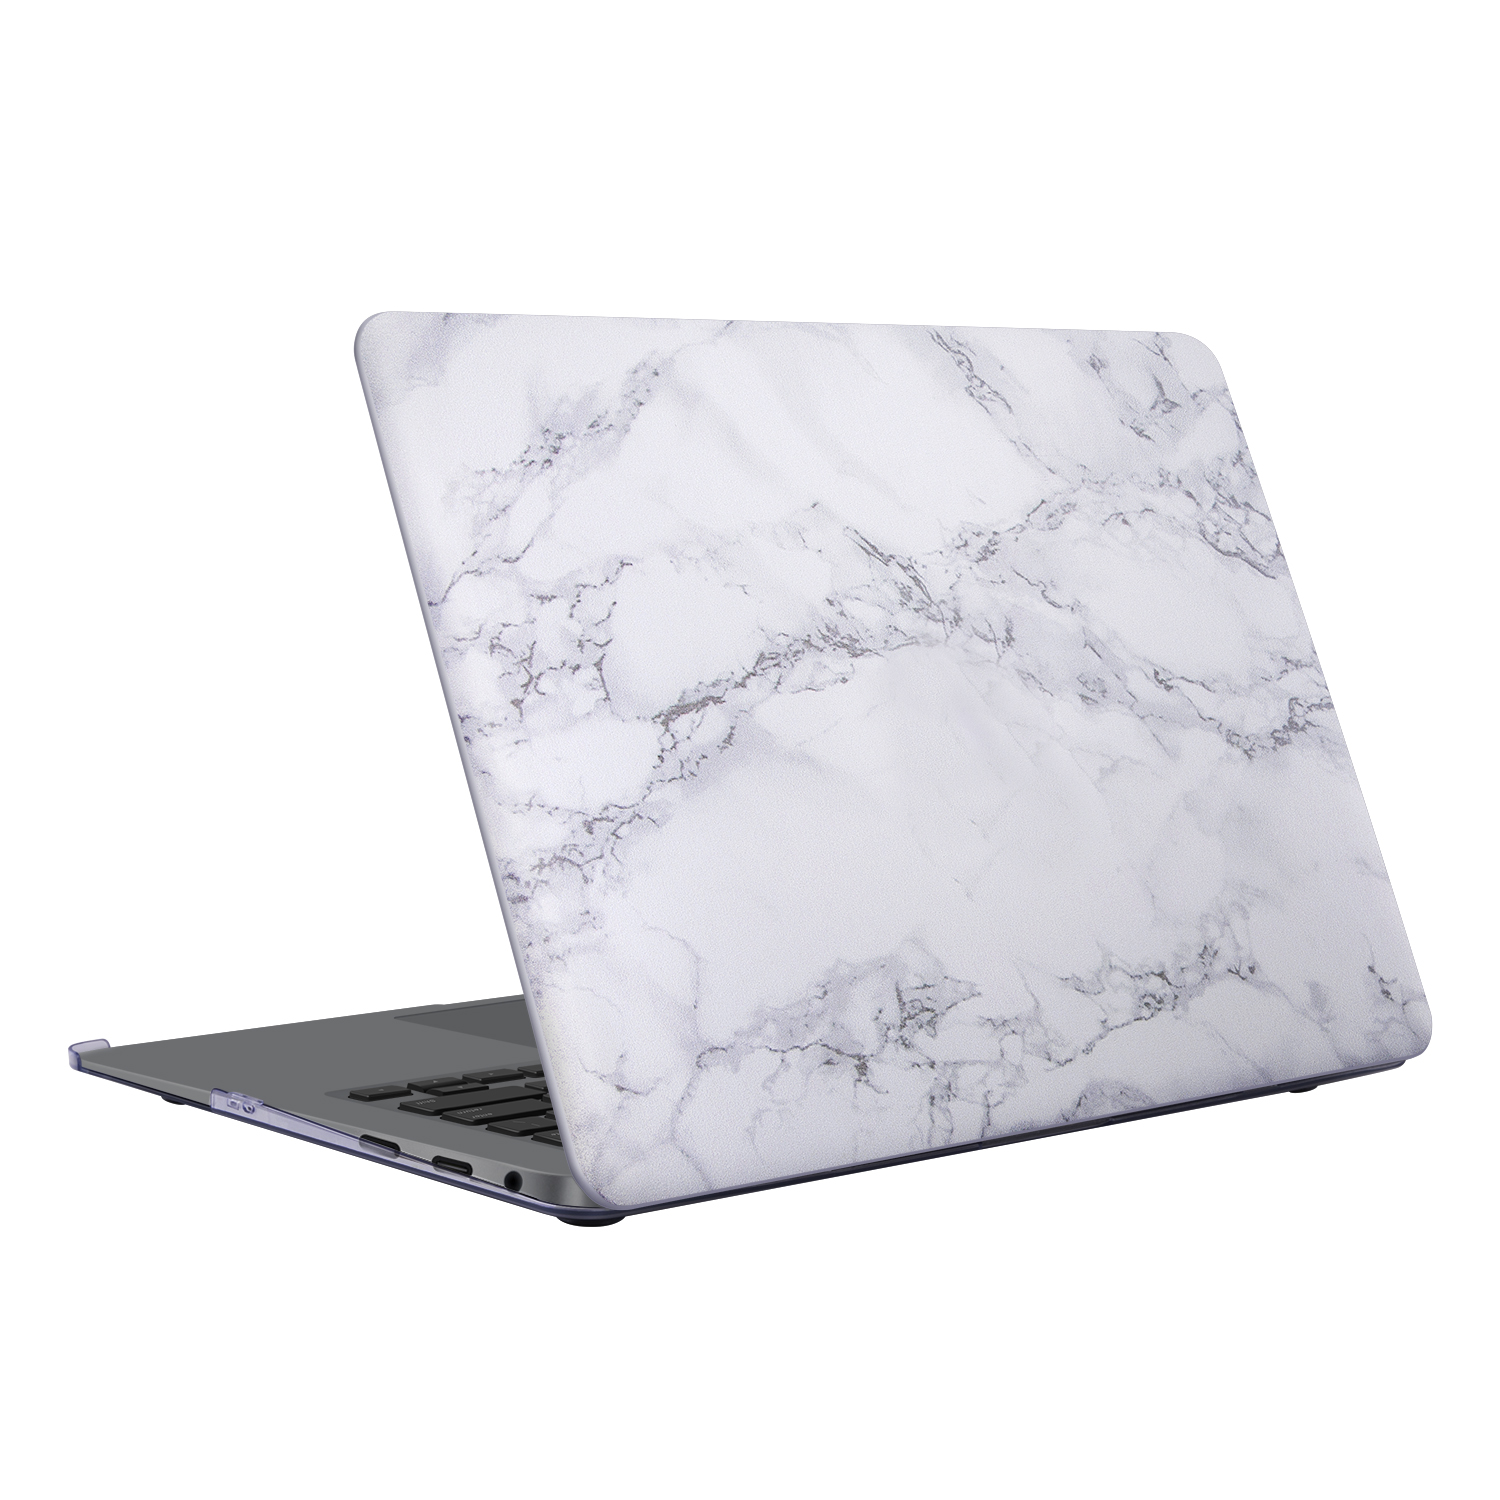 Macbook Pro 15 Inch 2016 2017 2018 2019 Release A1707 A1990 Plastic Hardshell Case Soft Touch Cover Coating Protector For Apple Macbook Pro 13 Retina Display Touch Bar Id Or Not White Marble Walmart Com Walmart Com